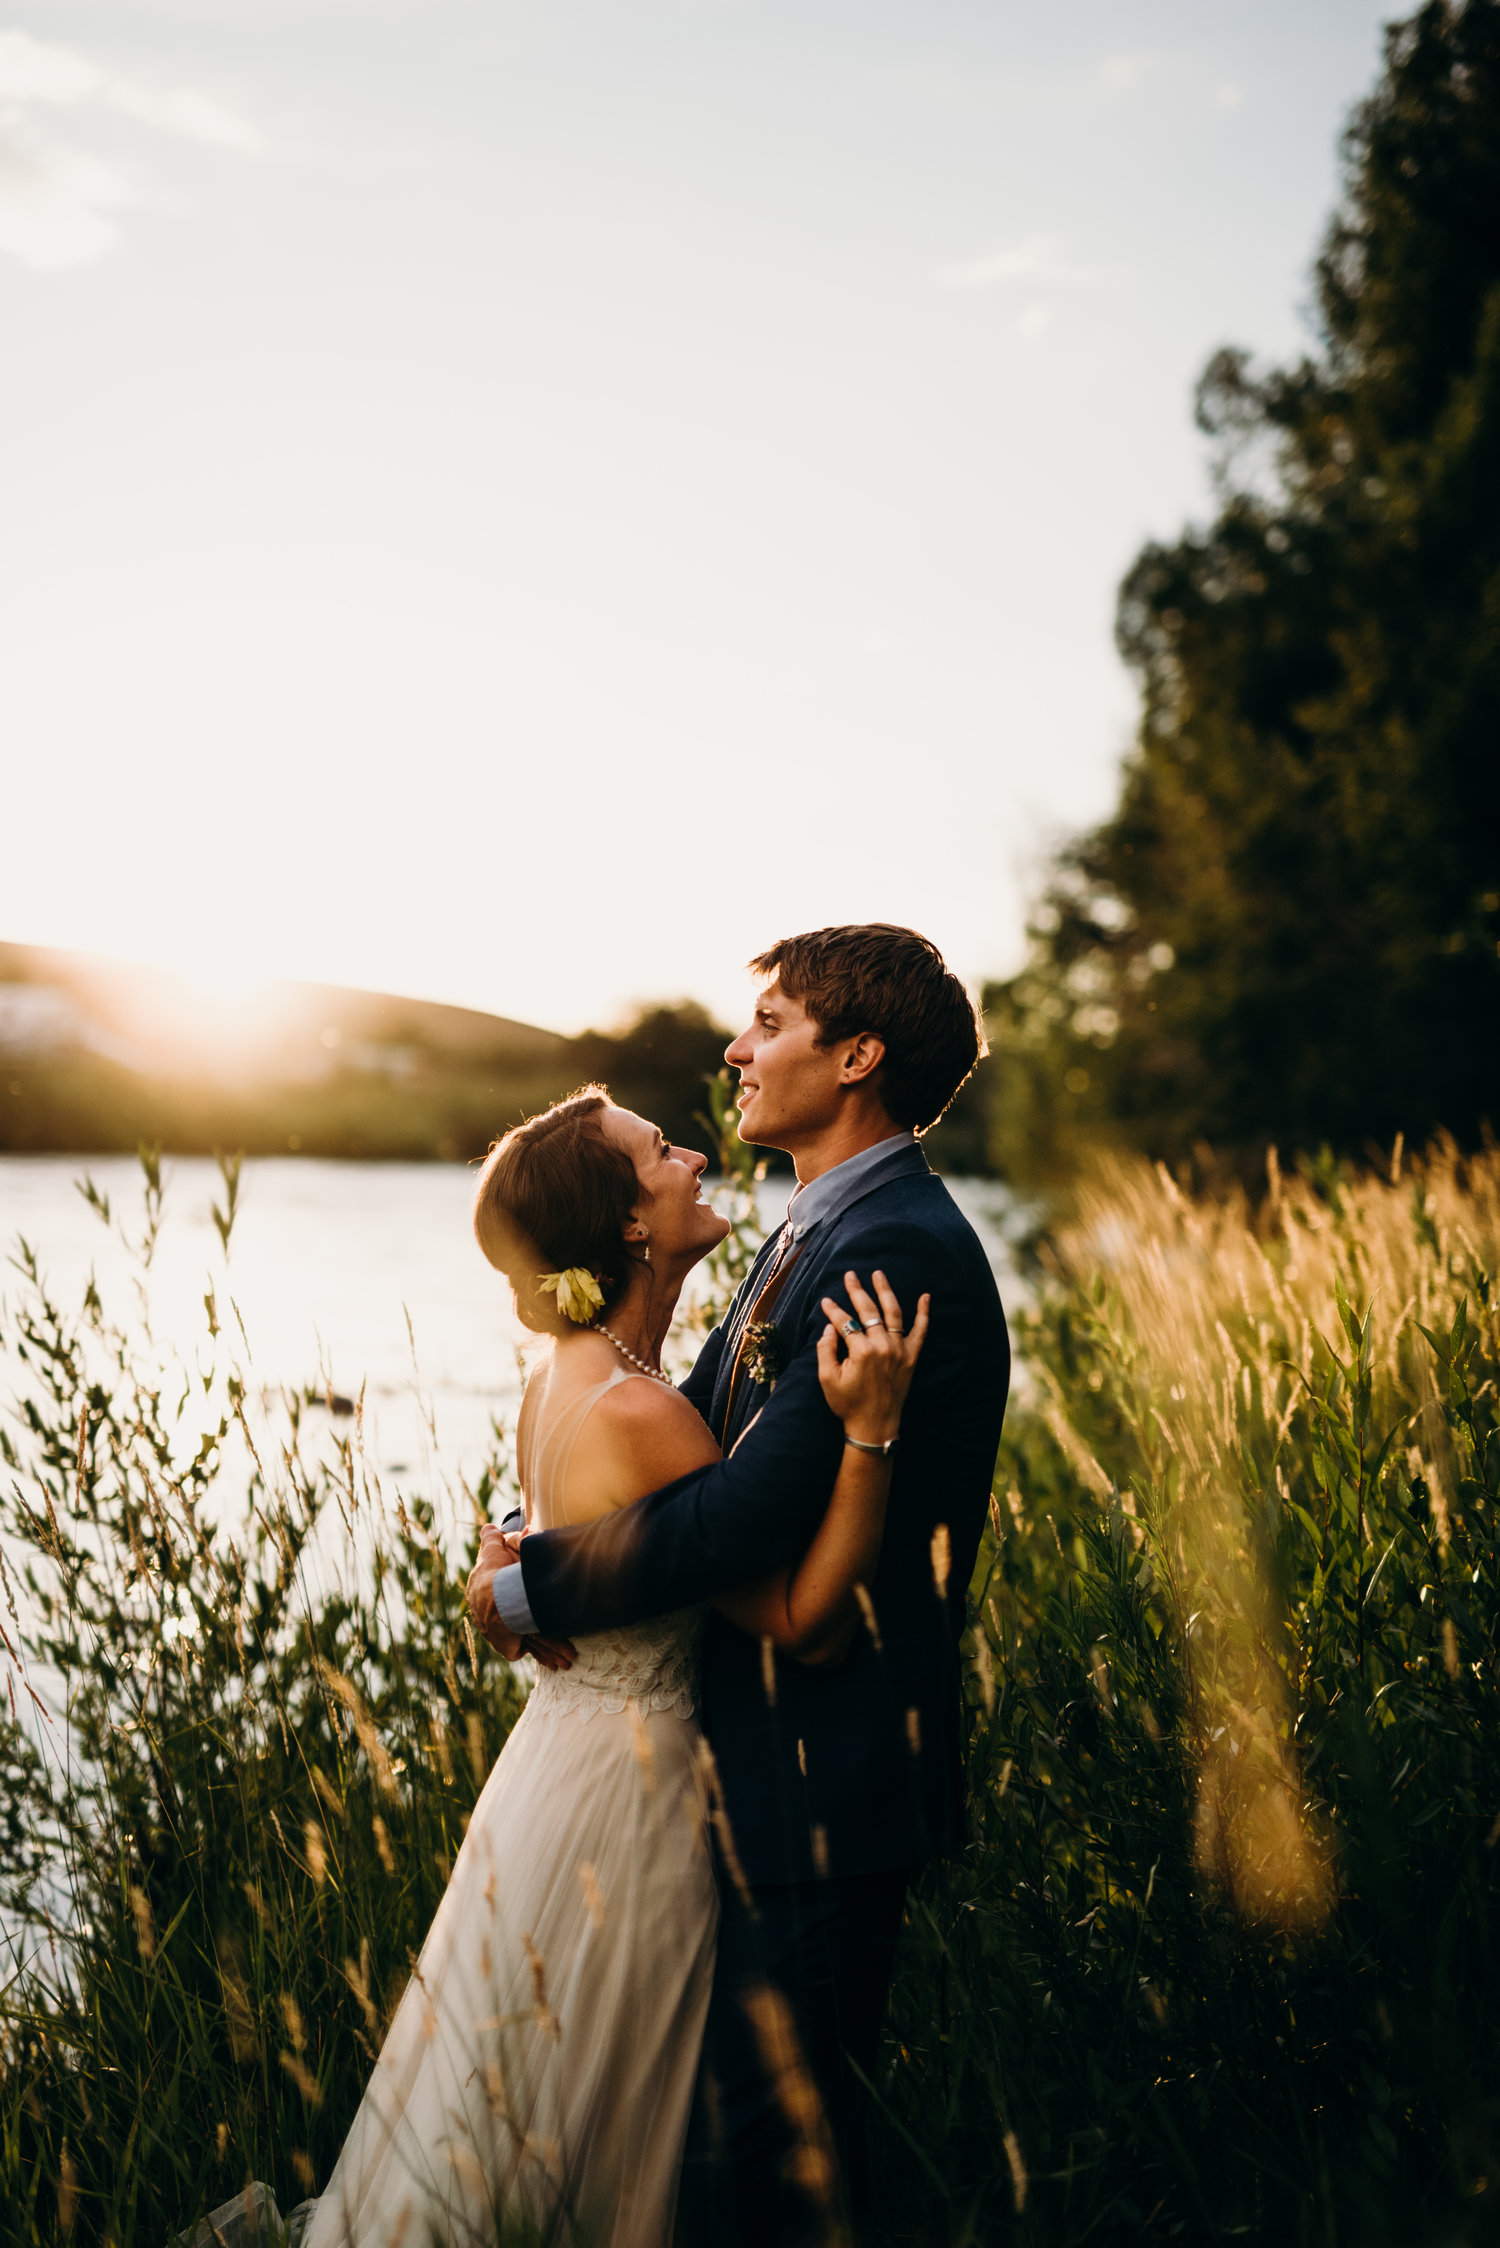 Golden hour riverside portraits - Sarah & Ben's Steamboat Springs, Colorado Bicycle Wedding